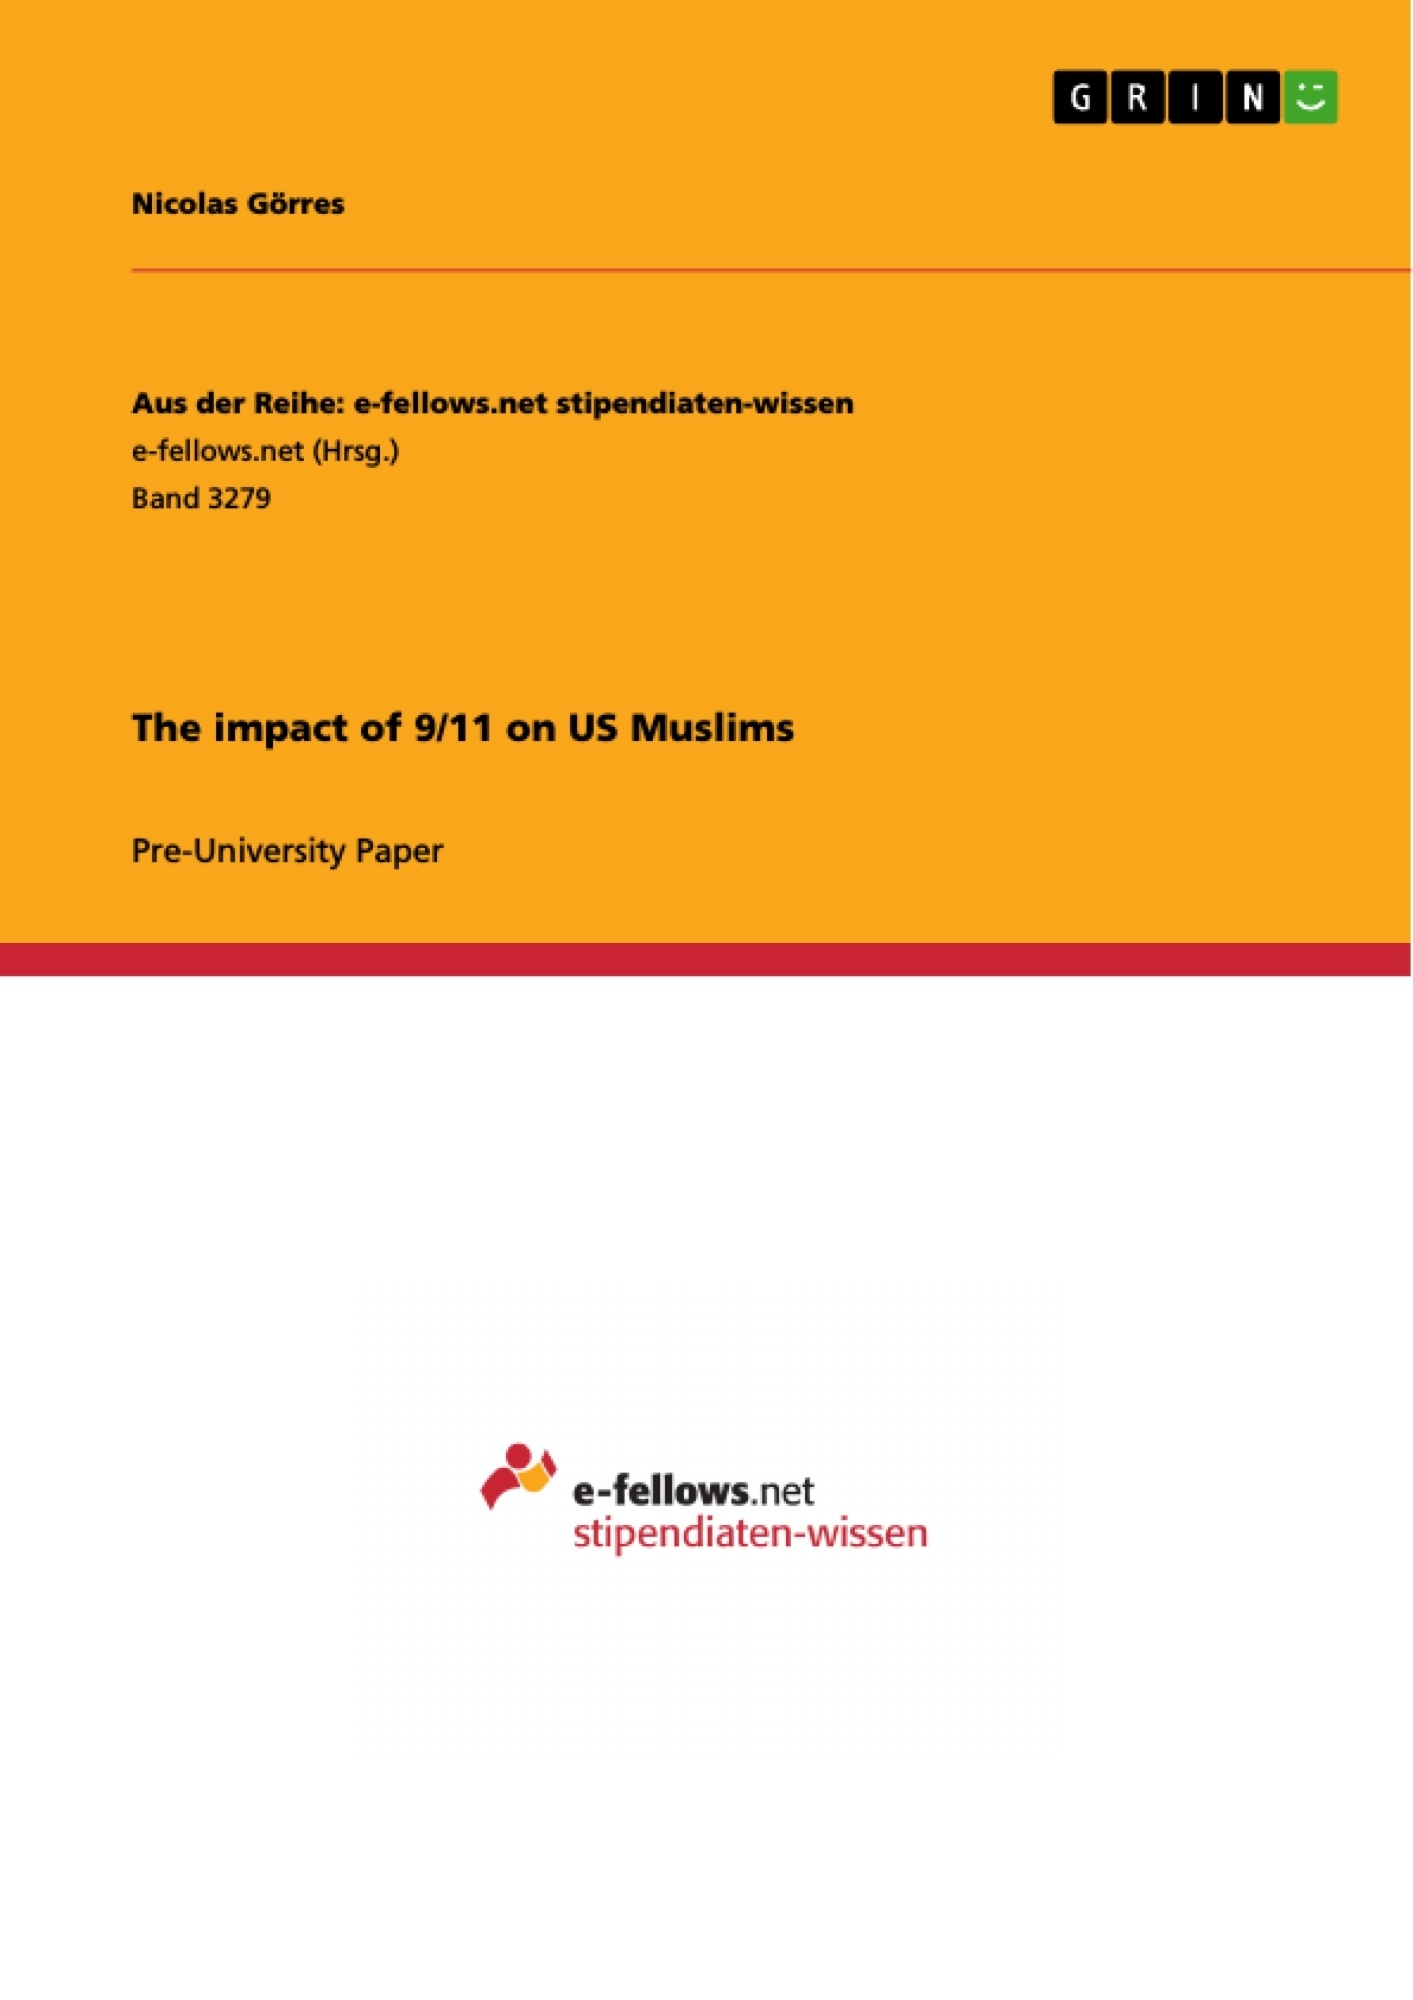 Title: The impact of 9/11 on US Muslims